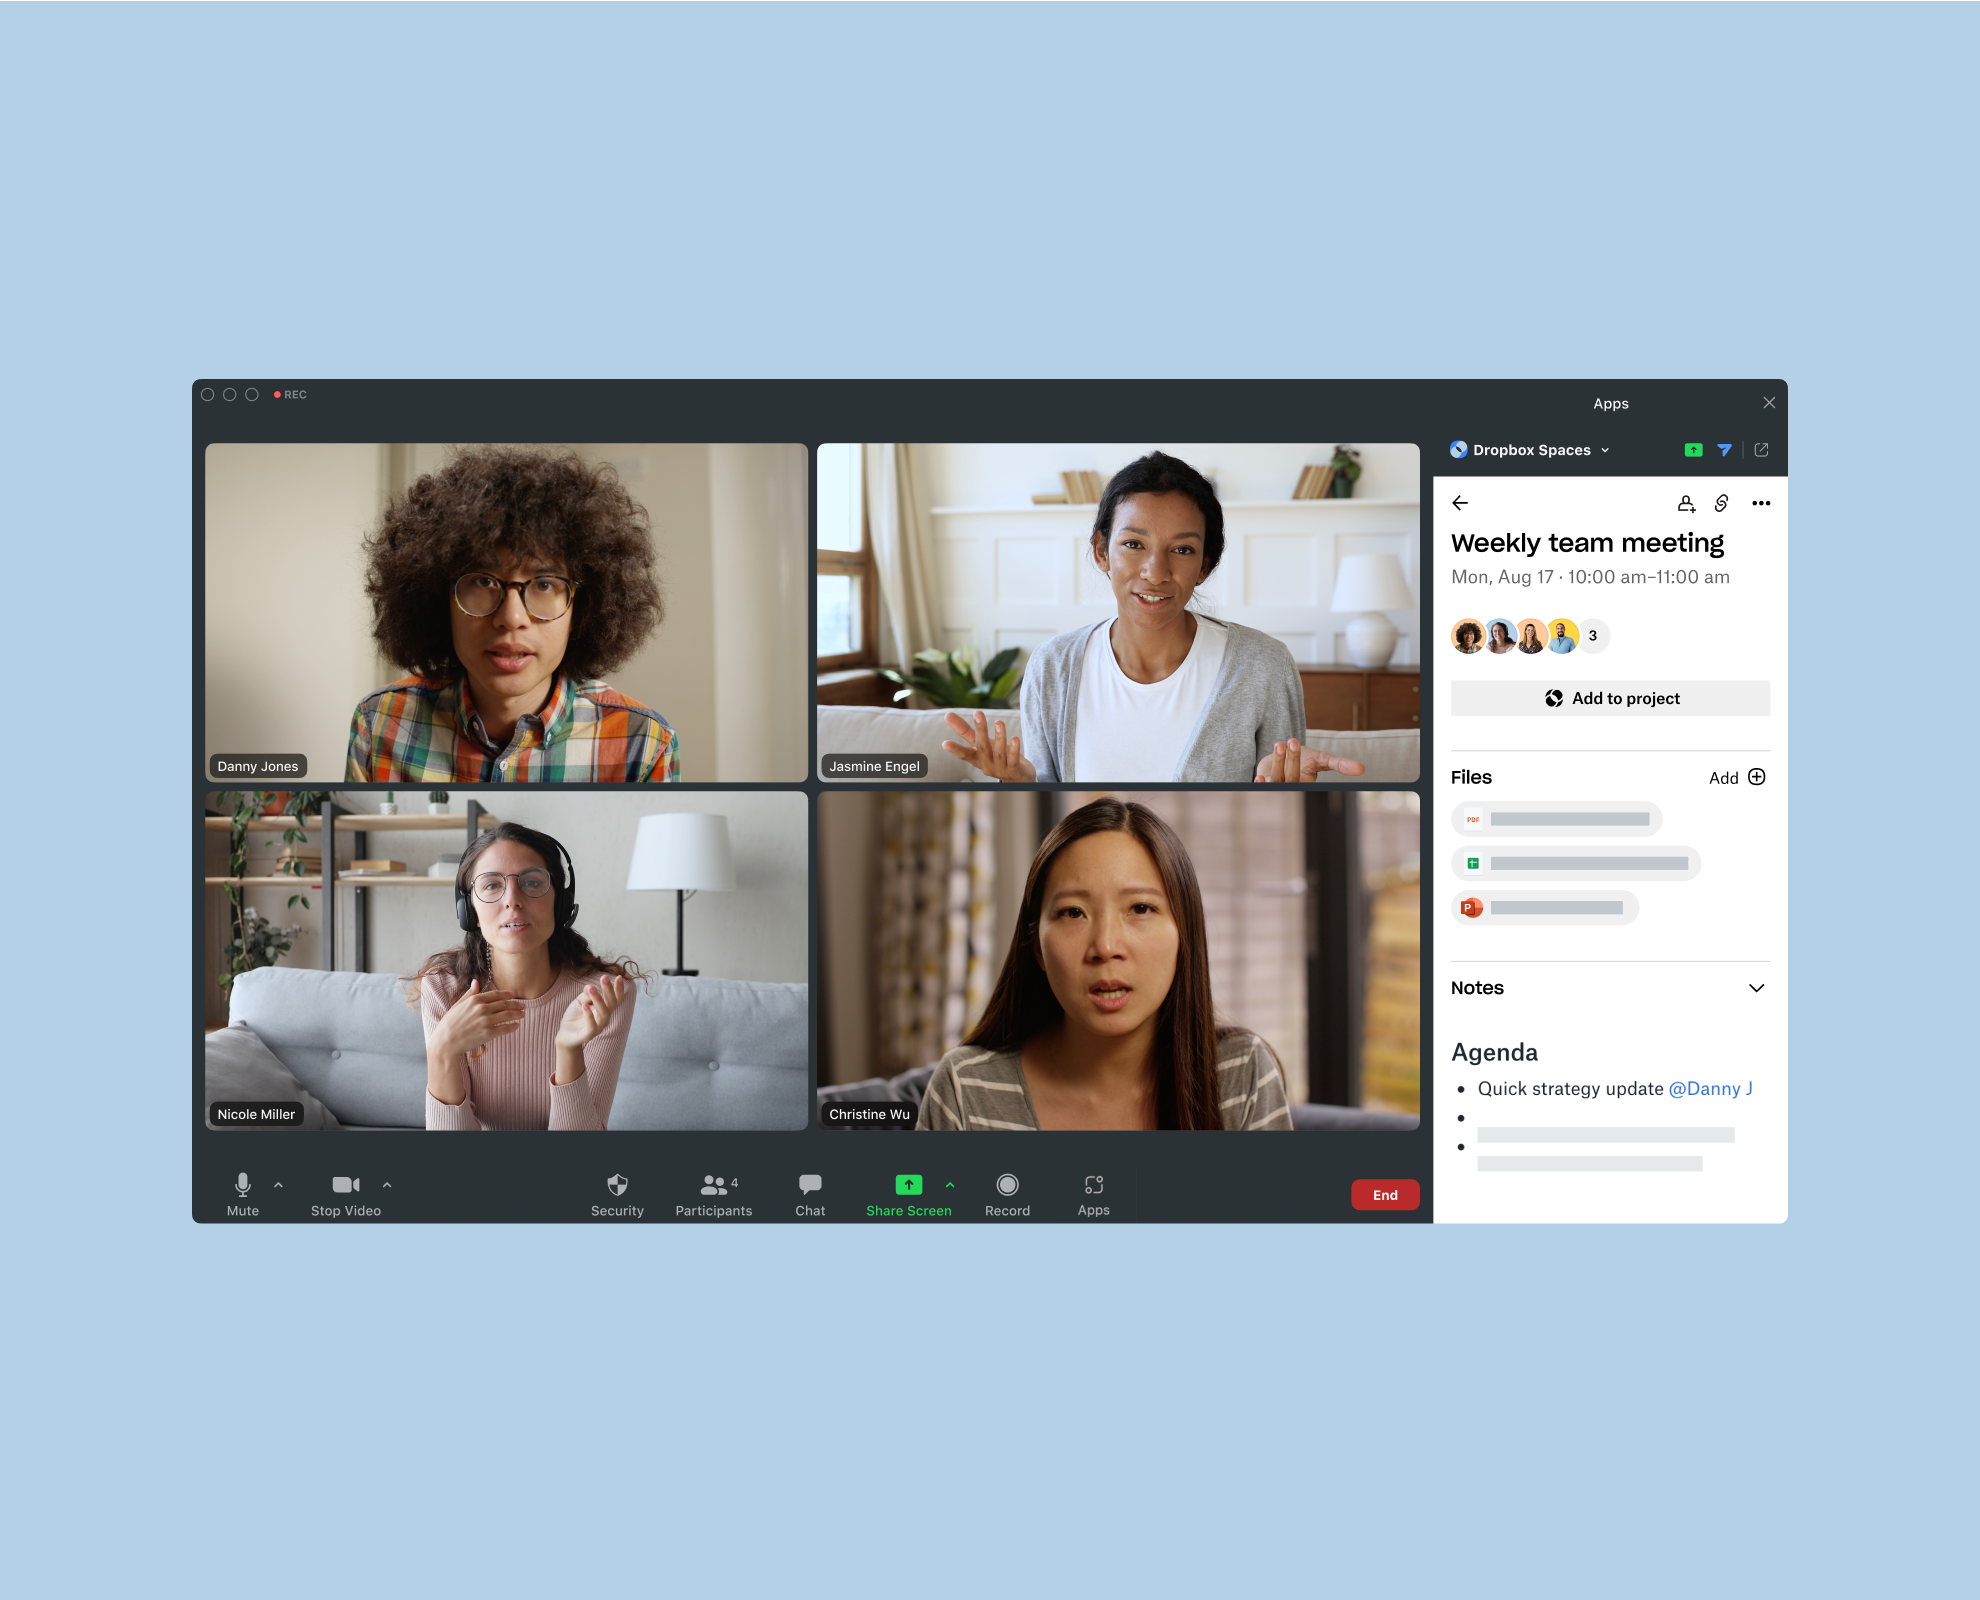 Image showing the Dropbox Spaces app for Zoom, which appears to the side of your Zoom Meeting with files and an agenda.